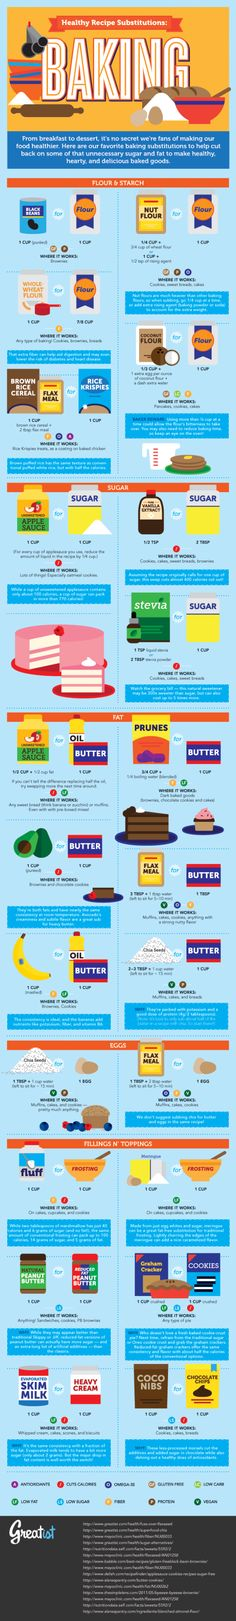 Healthy Recipe Substitutions: Baking Infographic via @Greatist